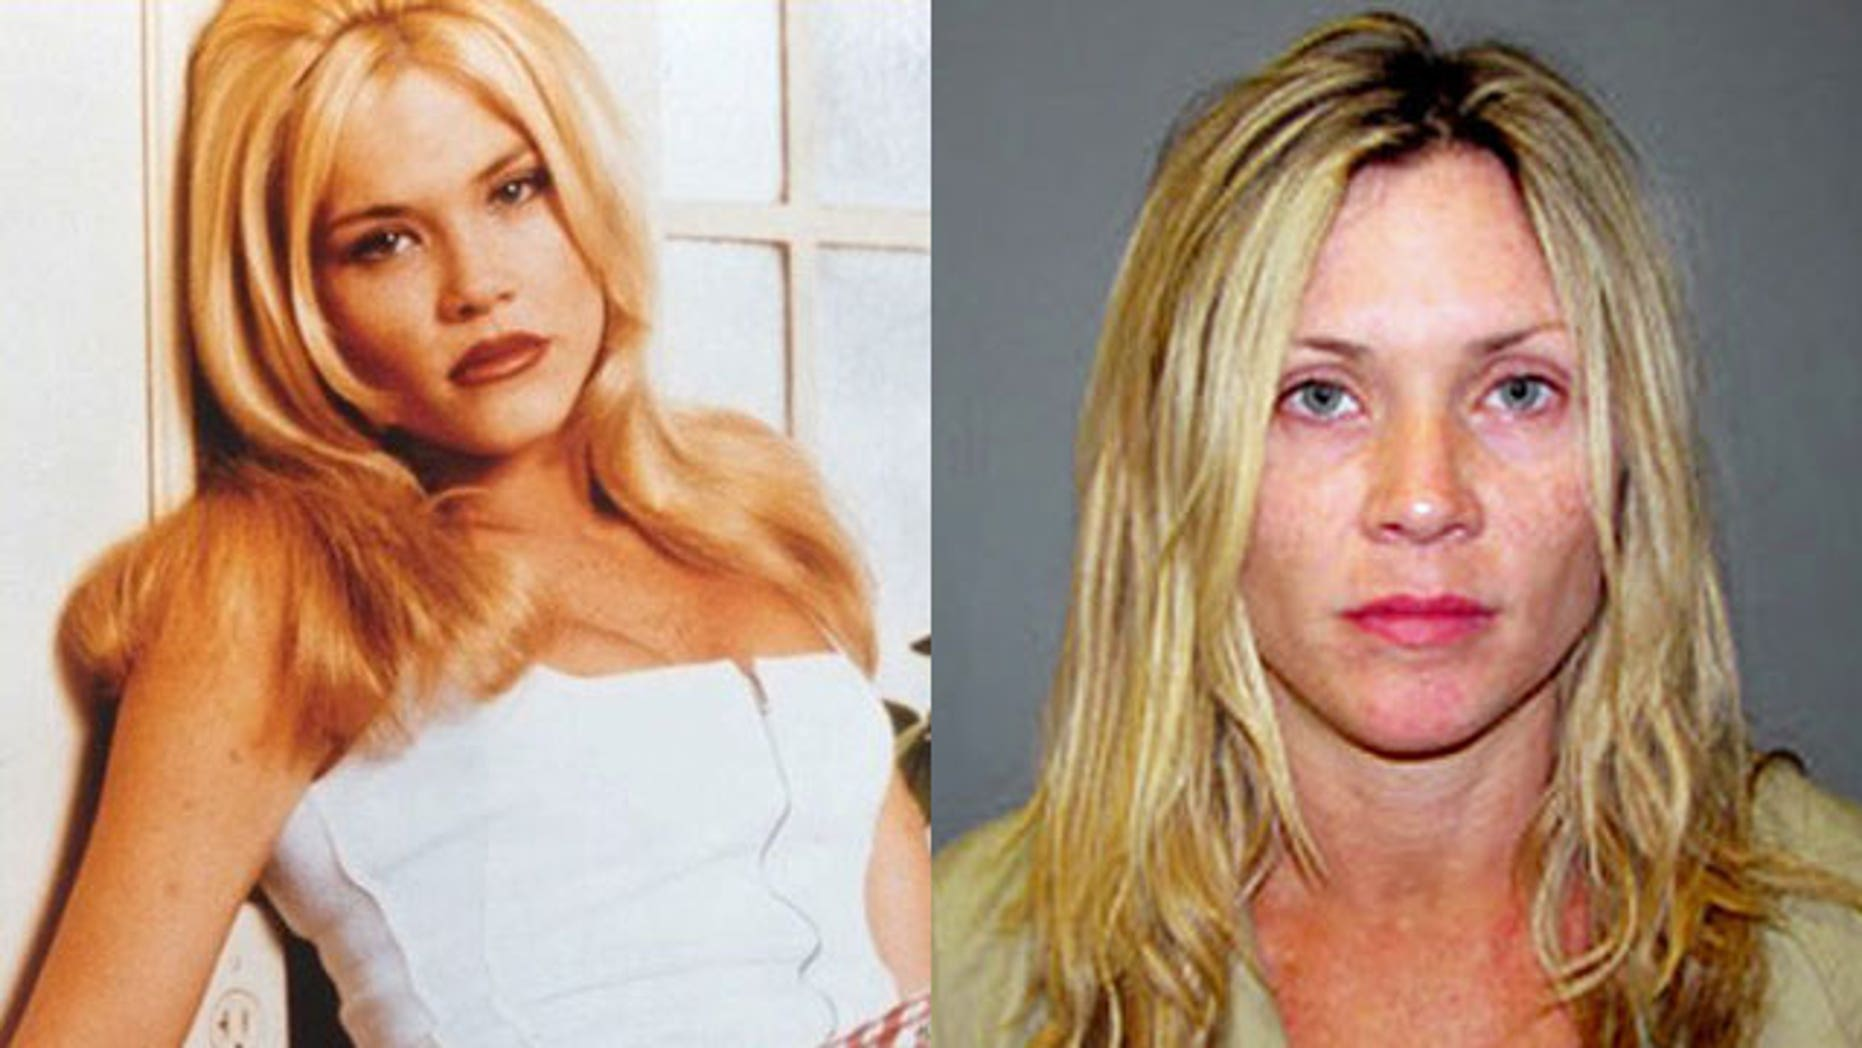 Amy Locane Melrose Place Pictures melrose place' actress charged in fatal car accident | fox news